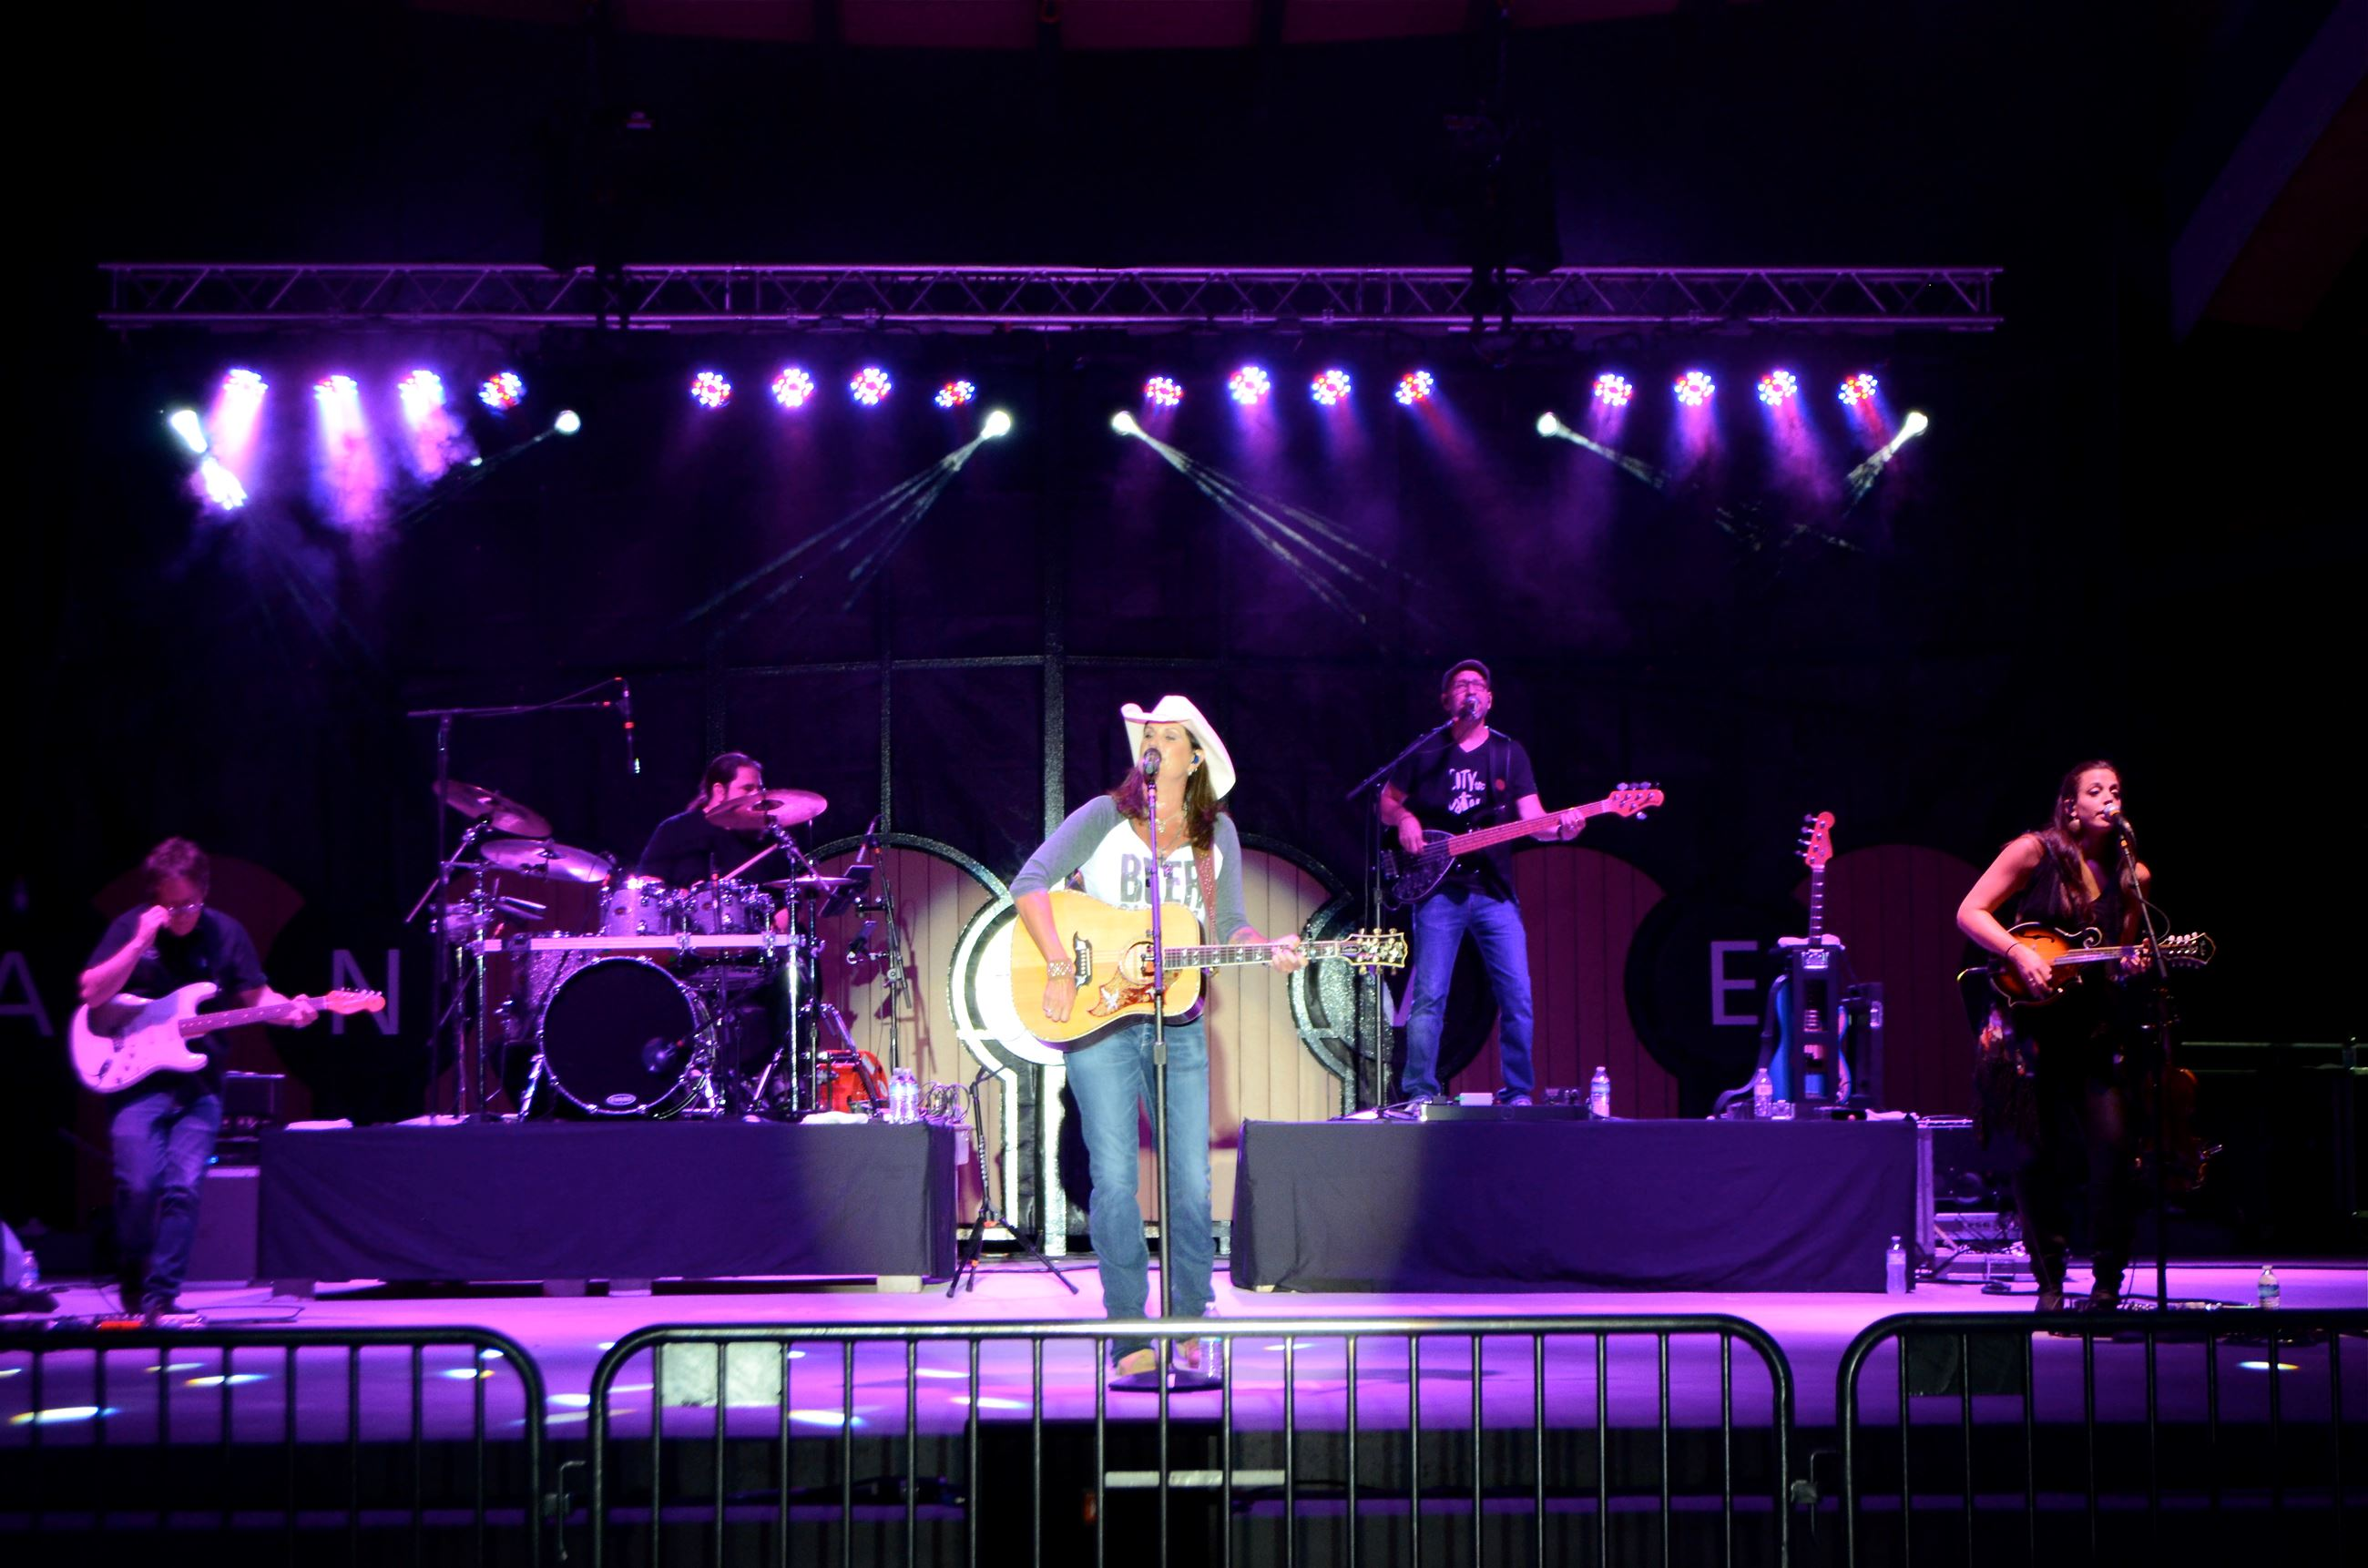 July 21 Concert Image of Terri Clark on Stage